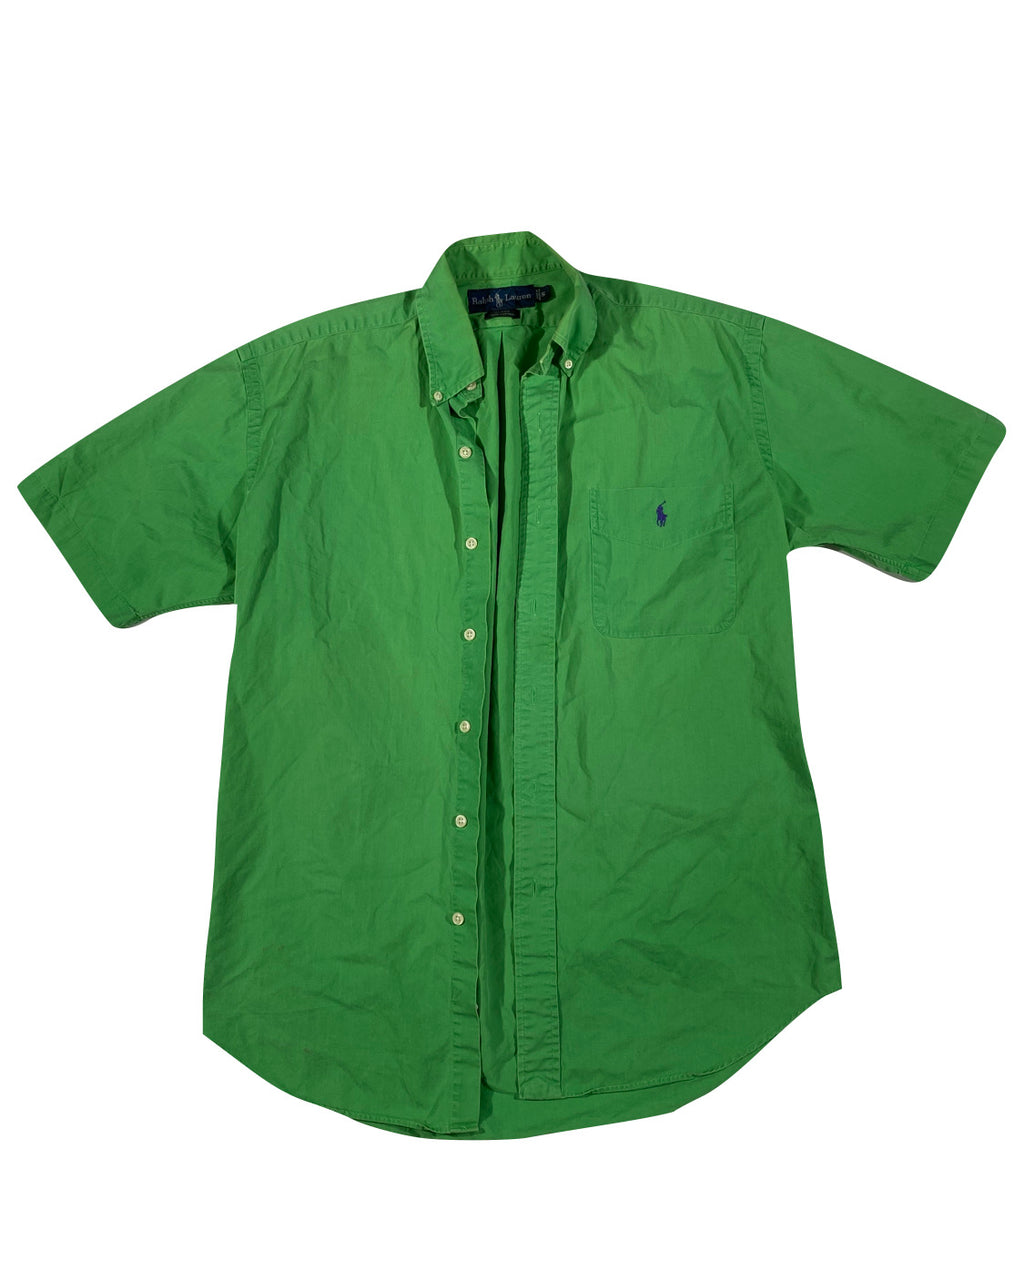 Polo ralph lauren shirt sleeve button down shirt. Small